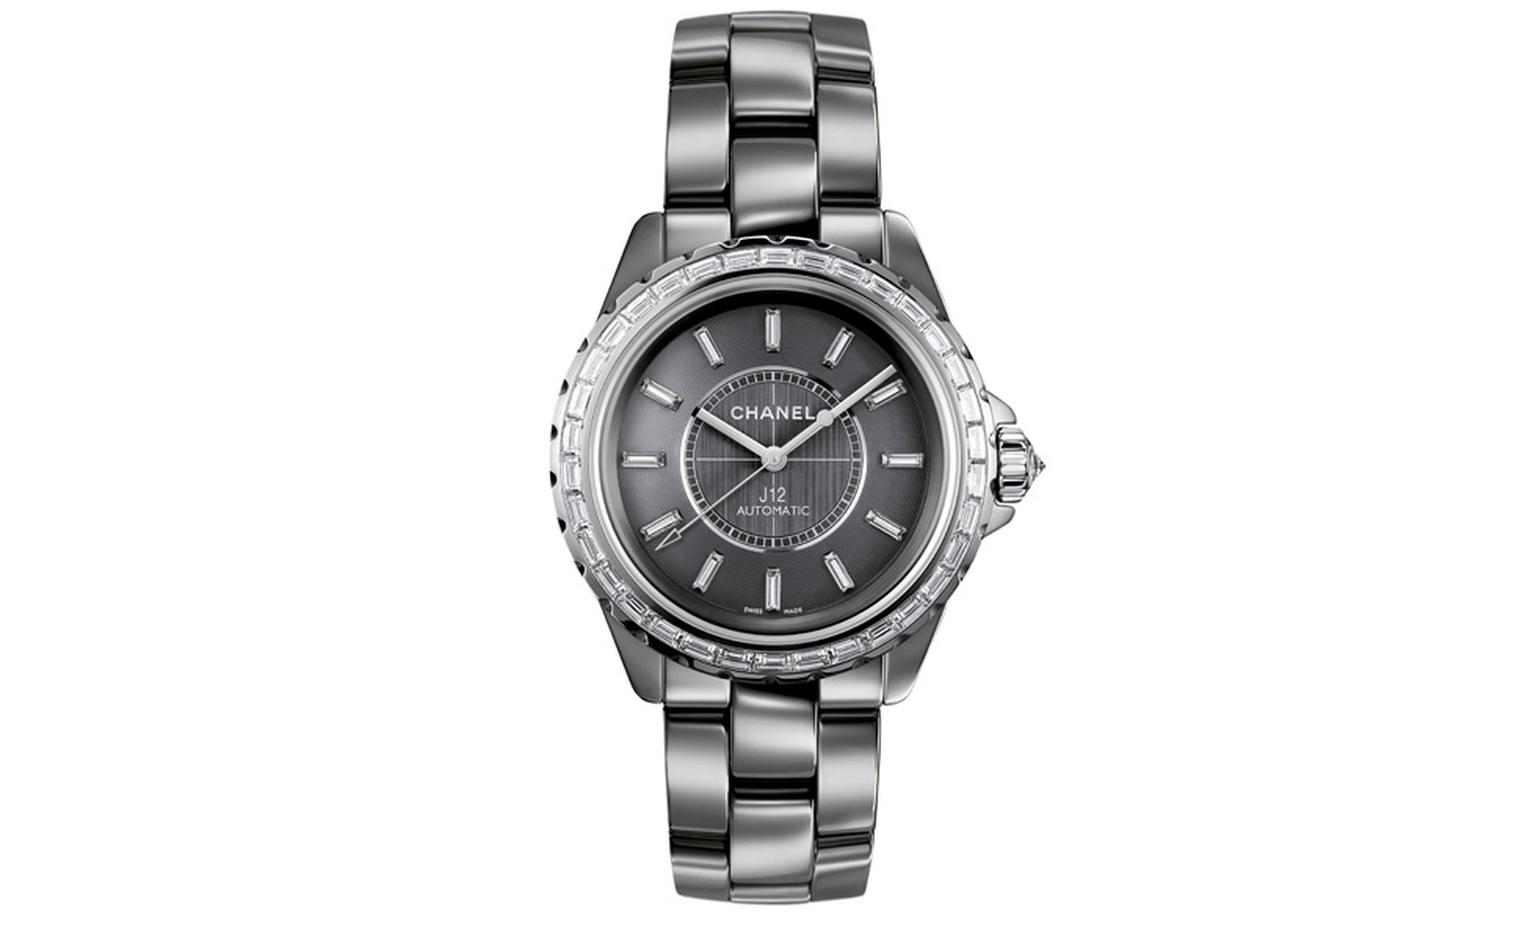 Chanel J12 Chromatic watch in titanium ceramic. 34 baguette-cut diamonds. Dial set with 12 baguette-cut diamond indicators . Brilliant-cut diamond crown. Self-winding mechanical movement. 42-hour power reserve. Functions: hours, minutes, seconds...